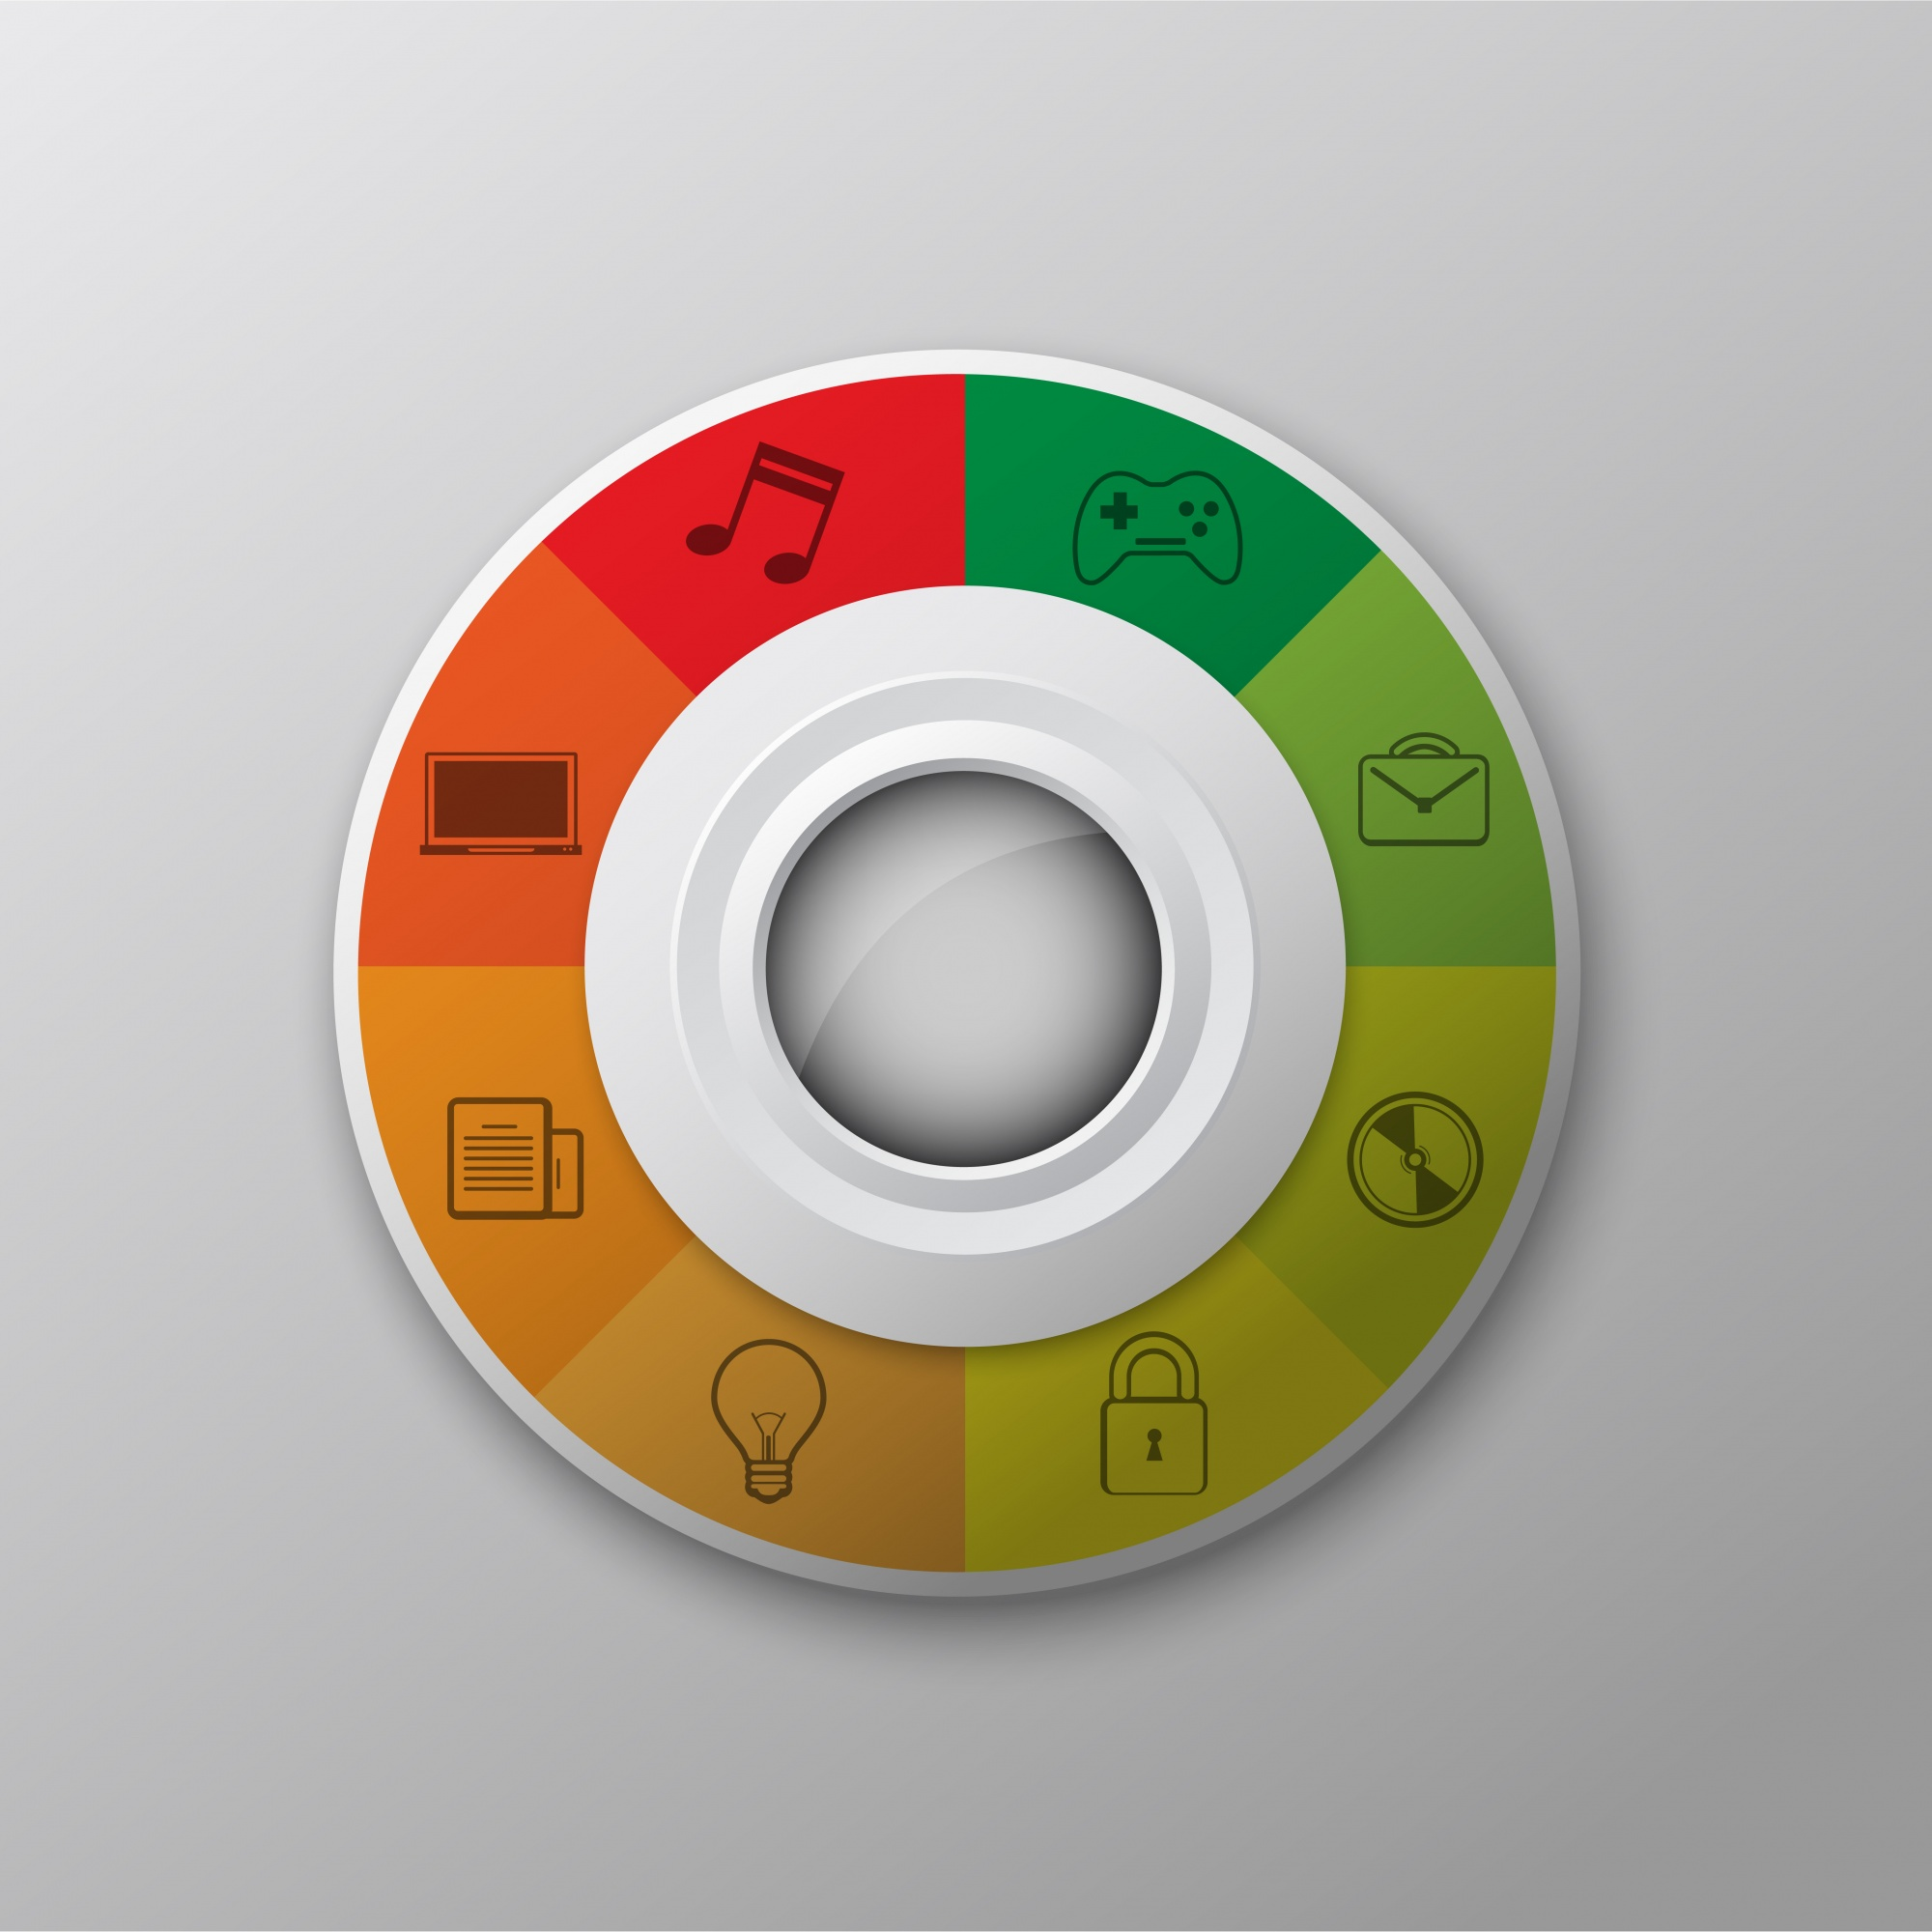 Multicolor circle with icons